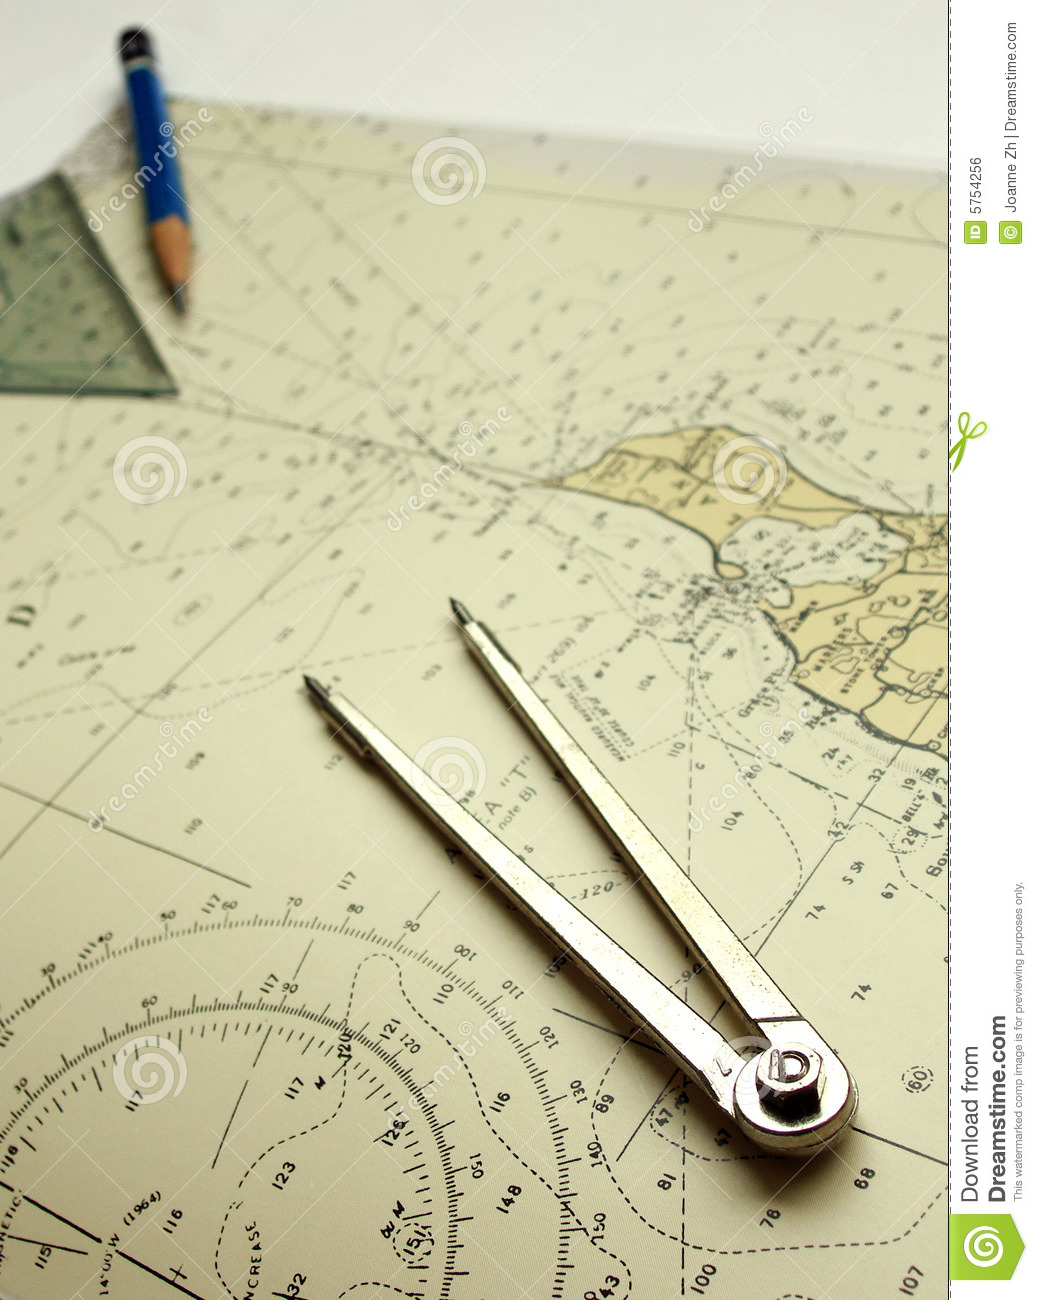 Nautical chart and dividers